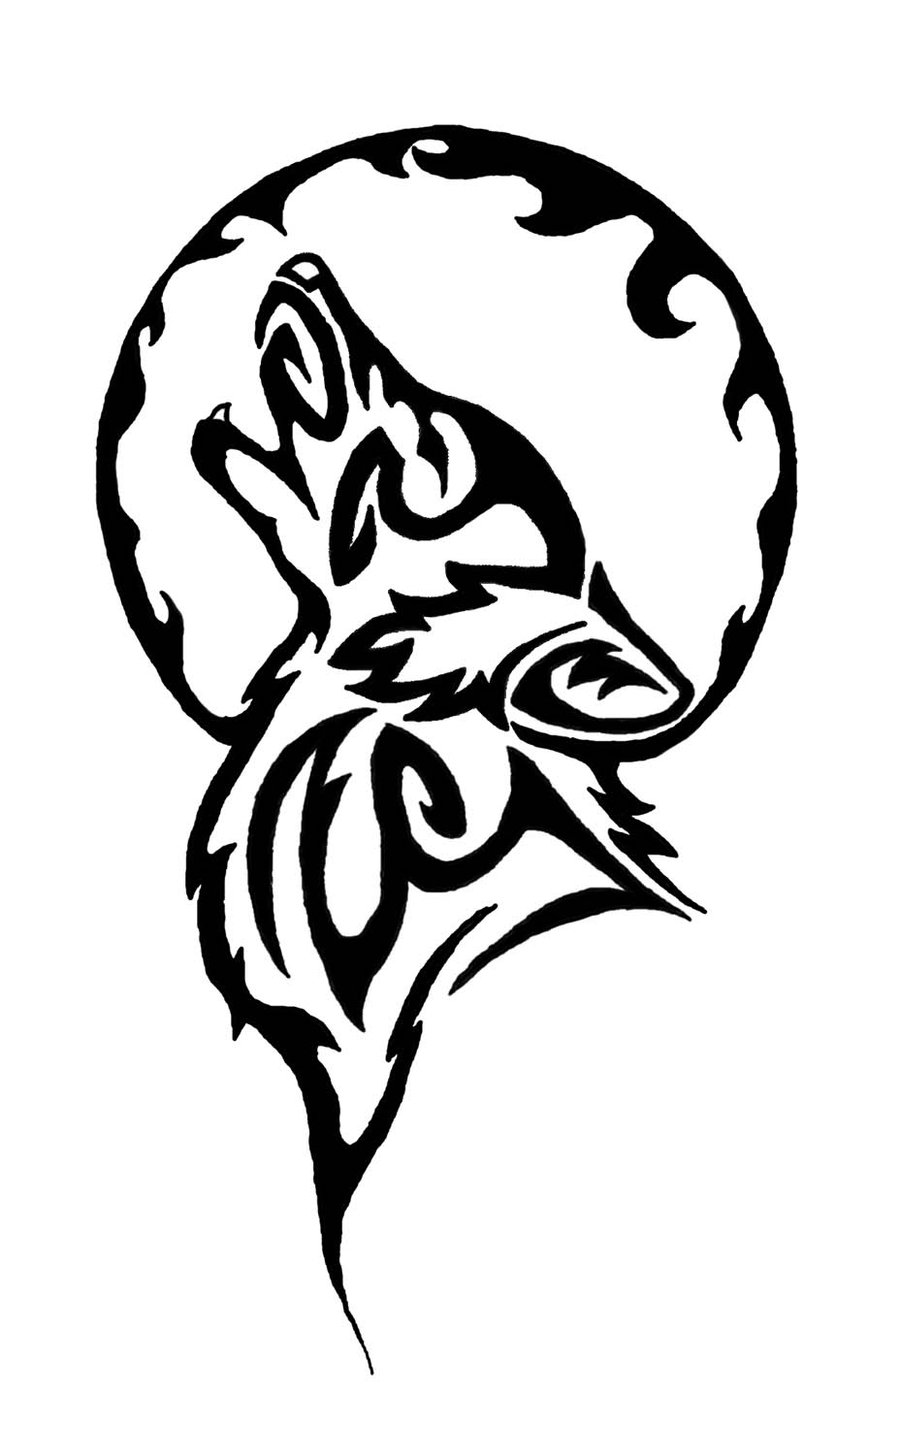 60 tribal wolf tattoos designs and ideas for Tribal wolf tattoo